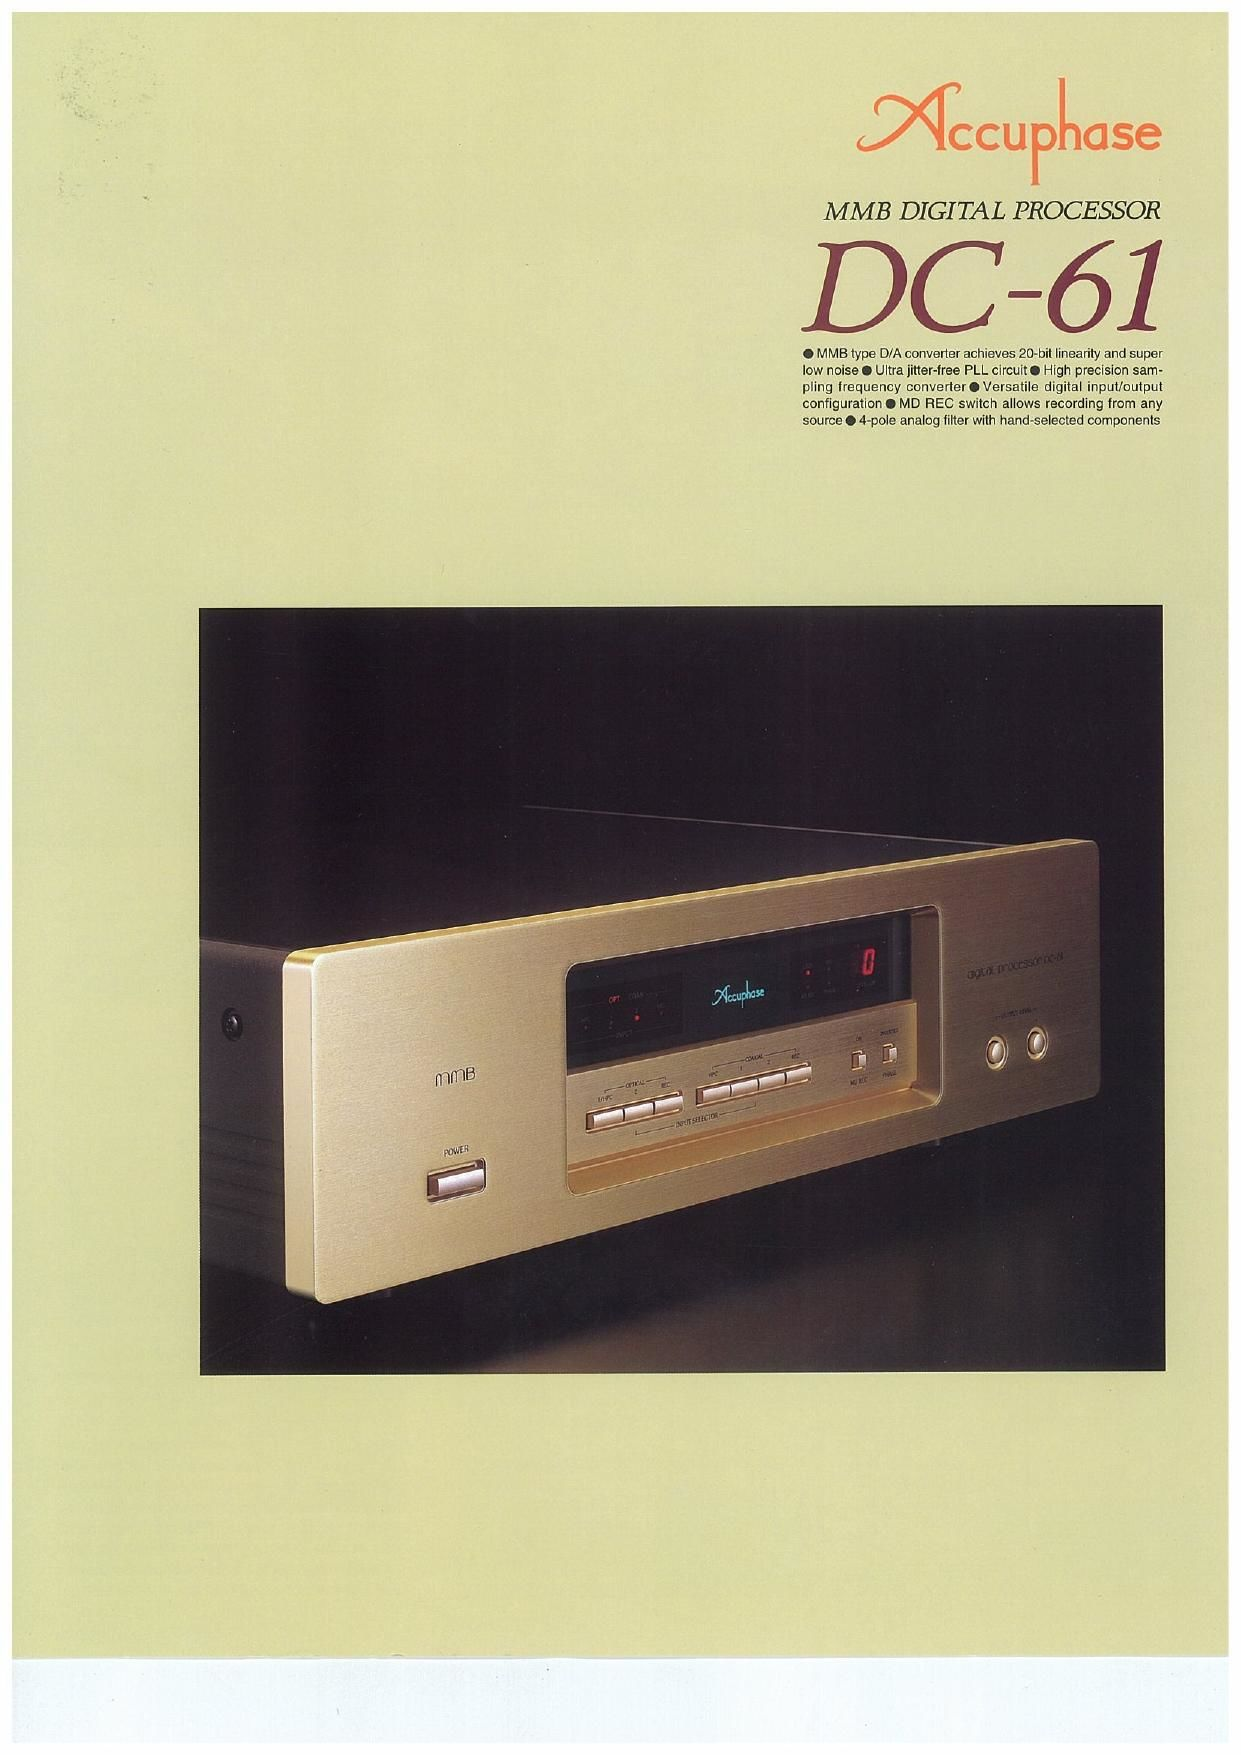 Accuphase DC 61 Brochure